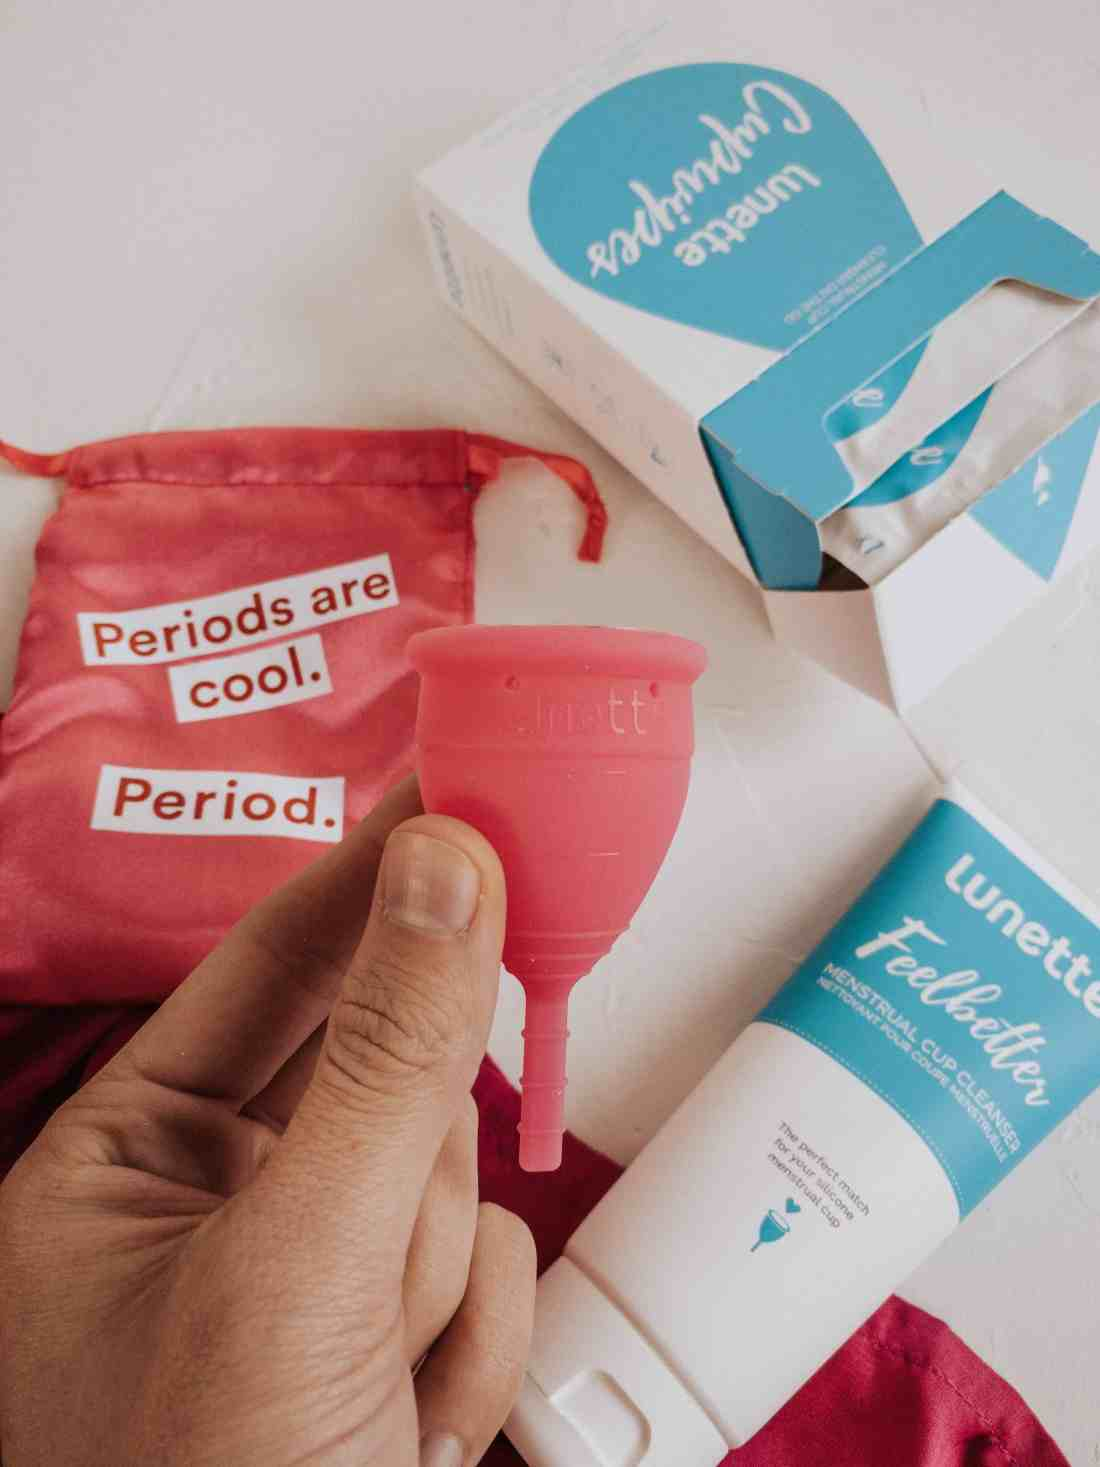 Here's everything you need to know about the Lunette Menstrual Cup, how to wear it, how to prevent leaks, the eco-friendly & body safe benefits & MORE!